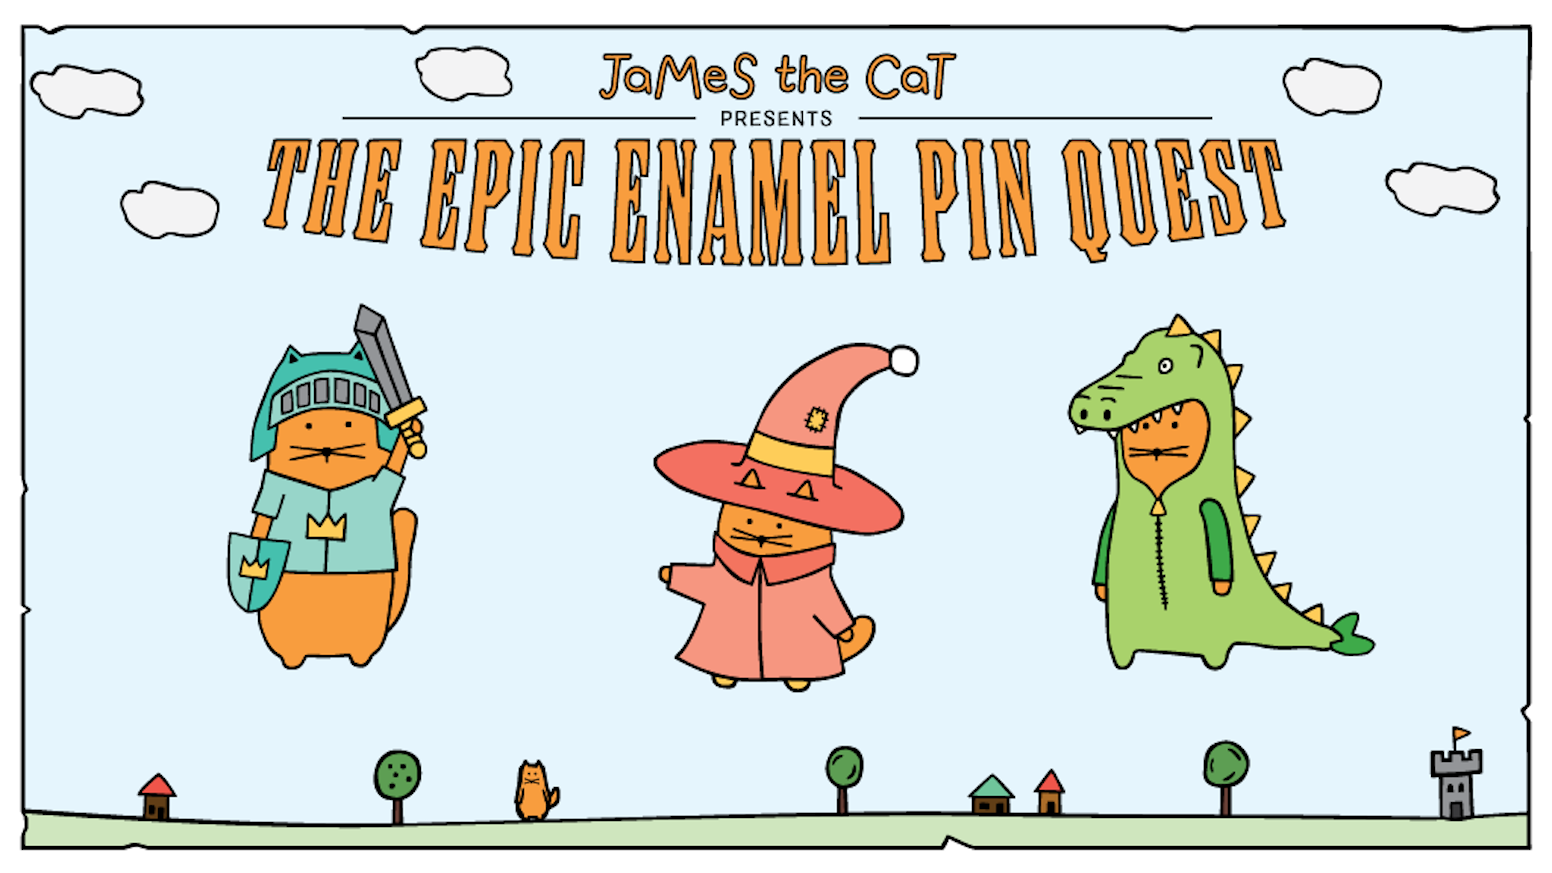 A legendary collection of cat warrior enamel pins